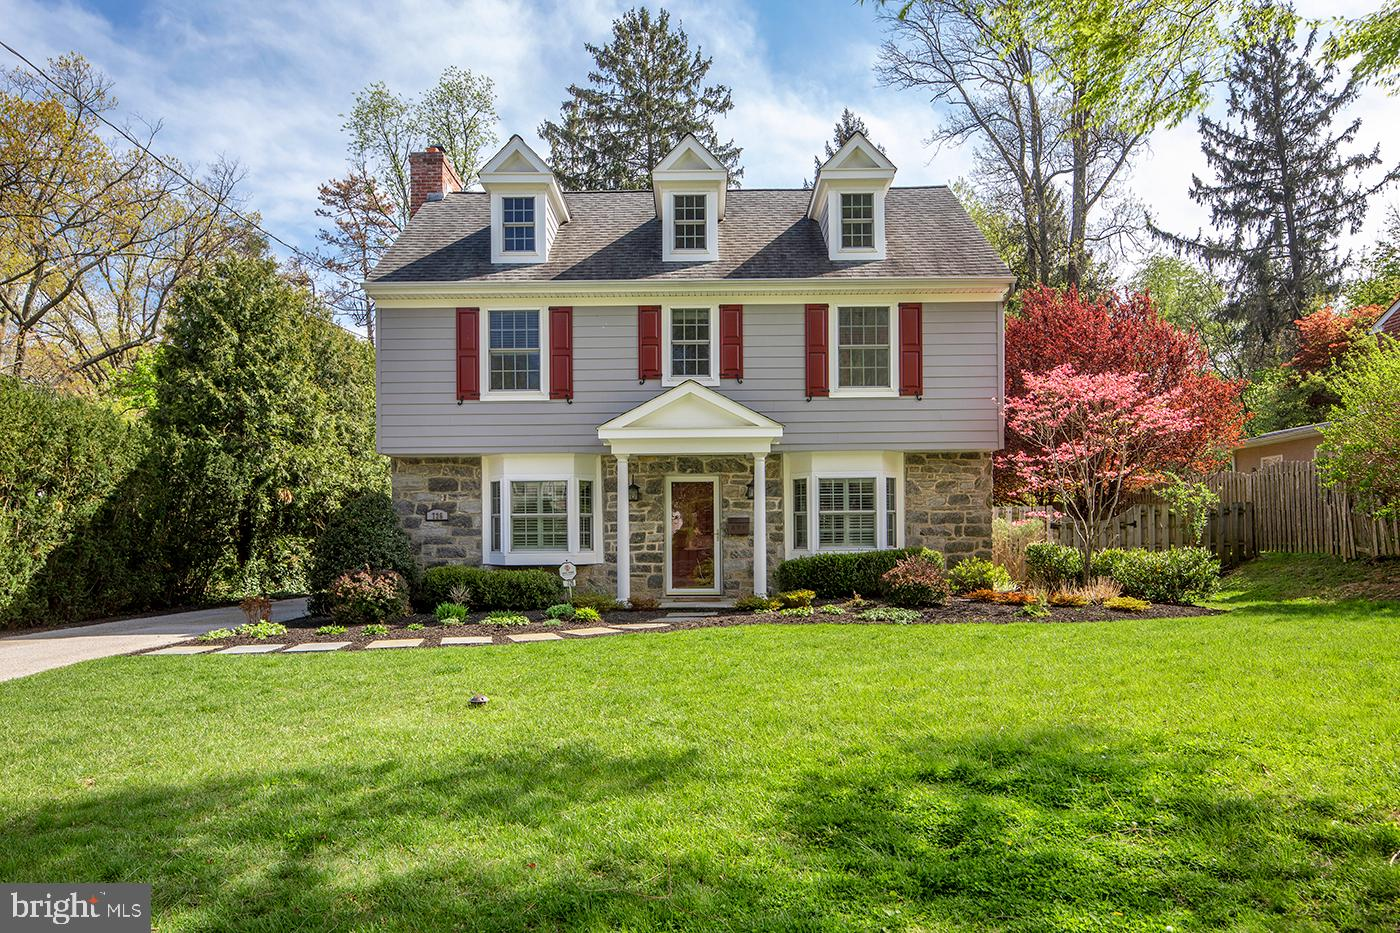 Experience the charm of a traditional stone colonial enhanced by a total renovation, modern open floorplan, and wealth of luxury upgrades! This exceptional Wynnewood family home on beautiful grounds is ideally located in a fabulous neighborhood near it all. Before current owners purchased this gem it was impeccably renovated by a prominent builder known for quality craftsmanship and attention to detail. Among the improvements that have enriched the home is a 30-year Certainteed architectural shingle roof; deep silled double-paned windows with energy-efficient low-e glass; gorgeous site-finished oak wood floors; exquisite moldings, millwork, hardware & fixtures; tastefully redone baths; and a thoughtfully-designed kitchen with custom cabinetry, granite countertops, and premium appliances for the chef.   Even more recent upgrades include the partly finished basement, window treatments, beautiful landscaping, an expanded patio, storage shed, and leveled backyard that is quiet and spacious.   Interiors are elegant and comfortable with sunlight pouring through. The main level has an easy flow for entertaining and gracious backdrop for relaxing with loved ones. Cozy up around the wood-burning fireplace in the living room with a book, board game, coffee or cocktail. Share family dinners and host holidays in the lovely dining room. Gather in the true heart of the house, the kitchen/breakfast/family room area, for cooking, casual meals, watching movies, or just lounging together.   Plus there's so much else to love, like a family room fireplace; convenient mudroom that's always an essential; an inviting master suite with a custom walk-in closet and tiled bath; junior suite with walk-in closet and private bath; 2 bedrooms adjoining a Jack and Jill bath; 2nd floor laundry; and 2 powder rooms. Kids will love spending time on the lower level with lots of space for play/recreation, as well as shelving and storage to keep things tucked away.  Topping the appeal is the address that